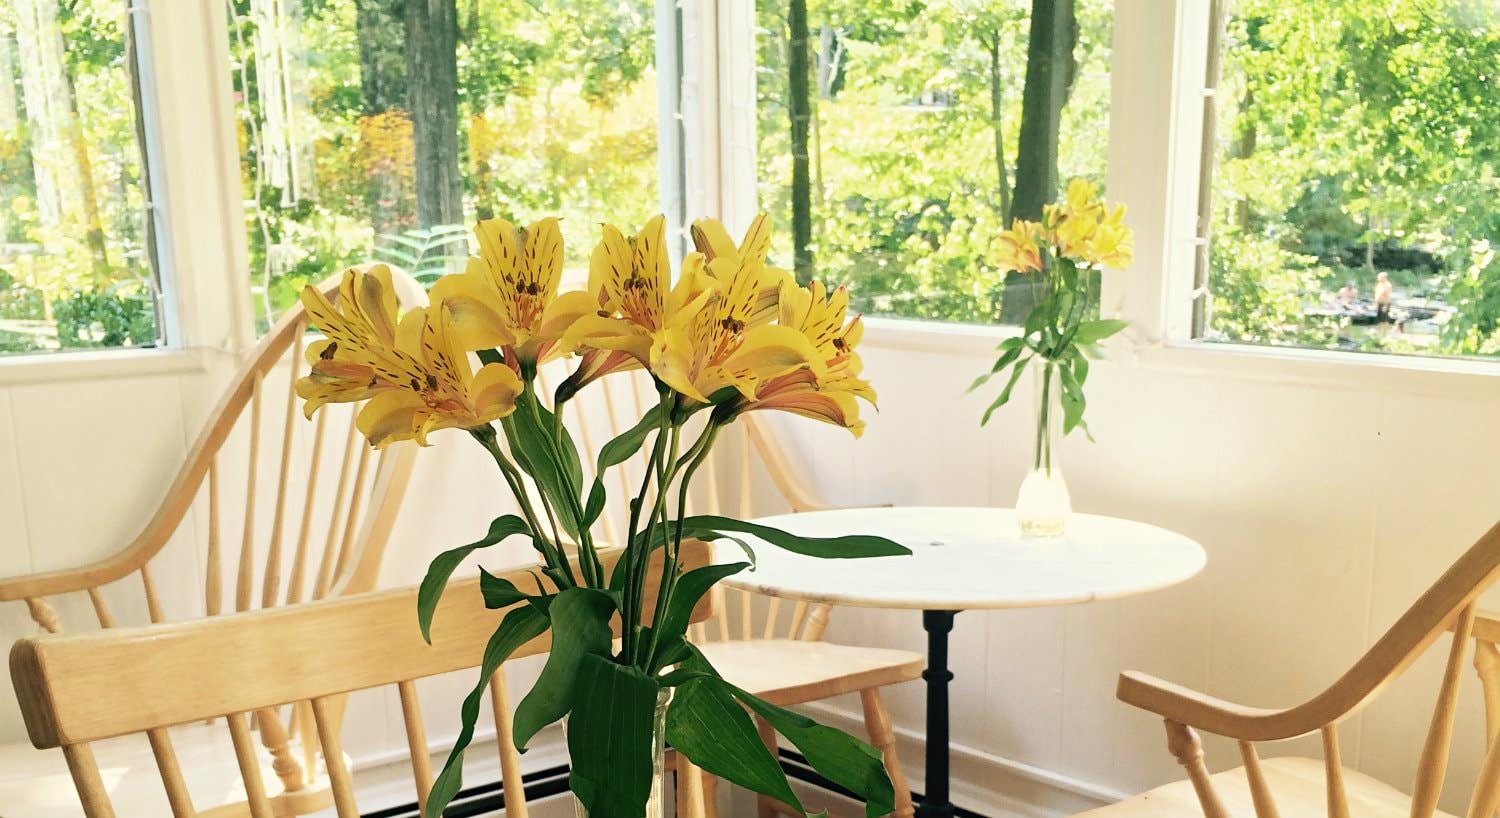 Small wood dining tables topped with vases of yellow lilies surrounded by windows with view of lush greenery